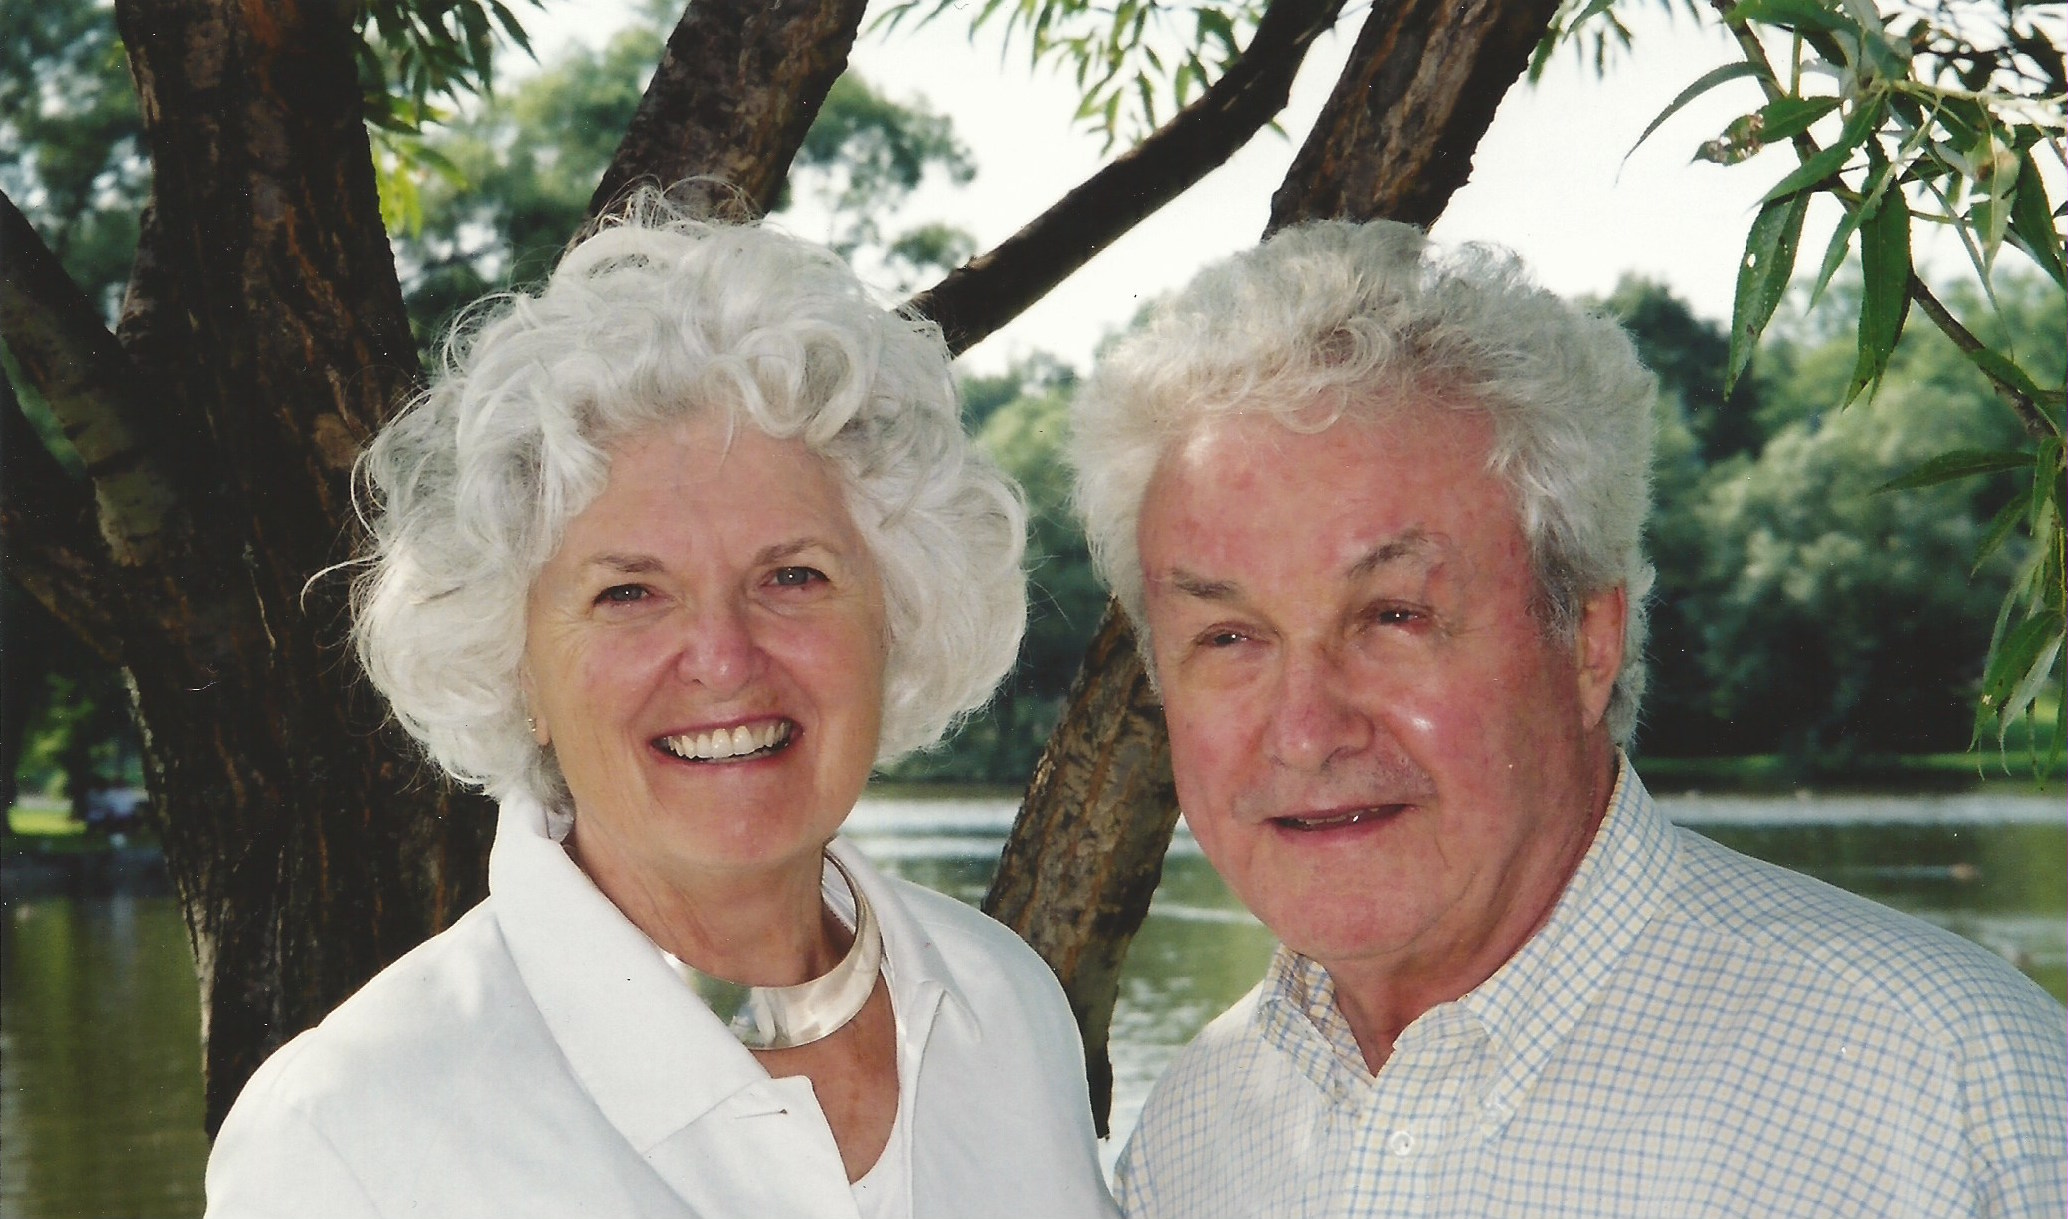 Mr. and Mrs. Earl and Marion Orser